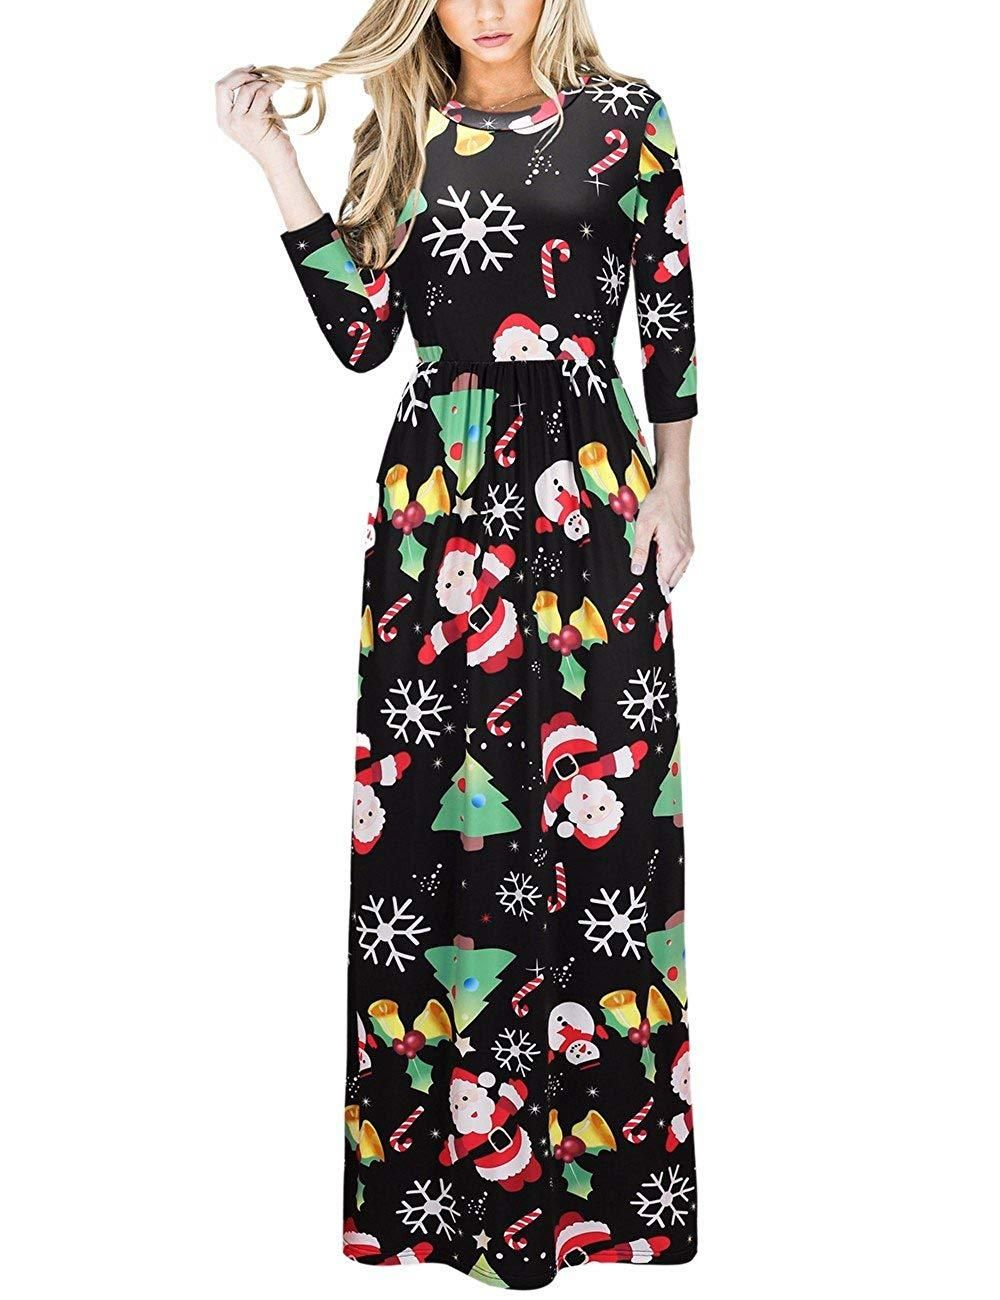 07caedc05ab8 Ruiyige Women's Christmas Dress Xmas Christmas Print Party Ugly Christmas  Long Maxi Dress